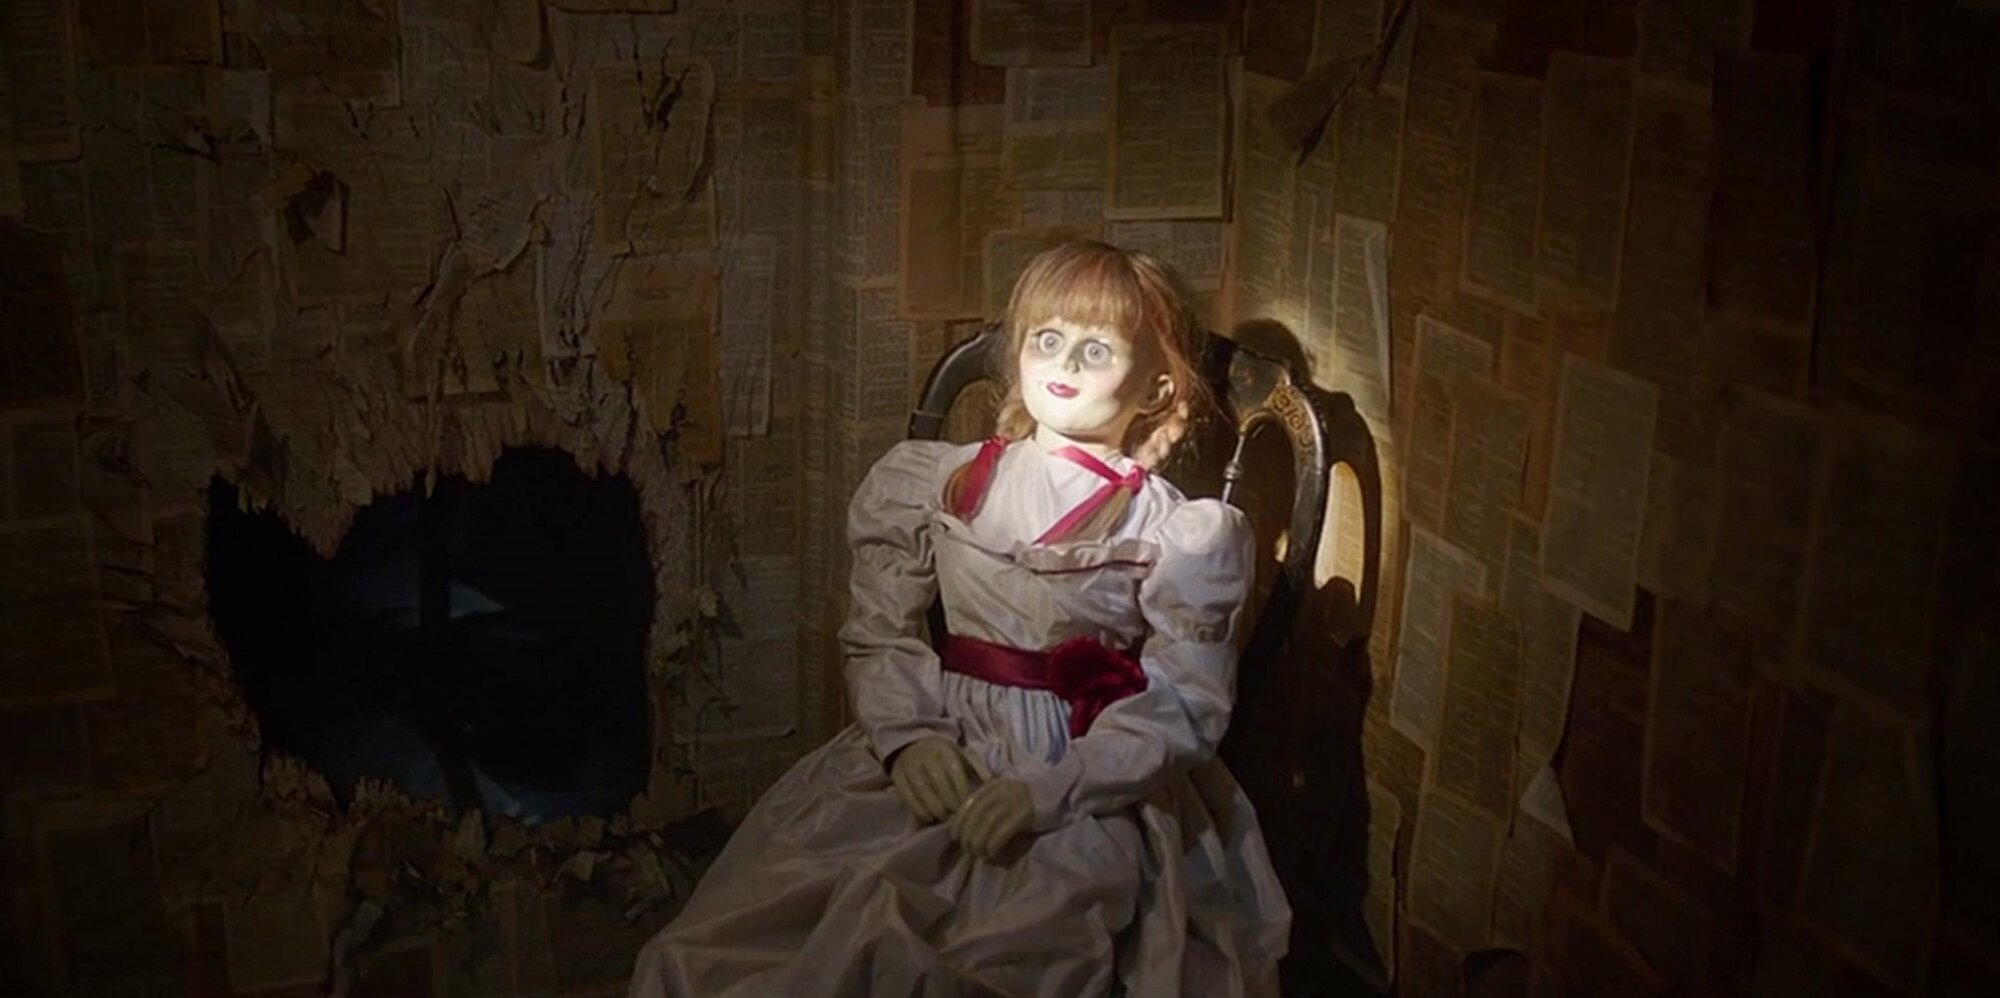 Real-life Annabelle doll has not escaped from museum | EW.com